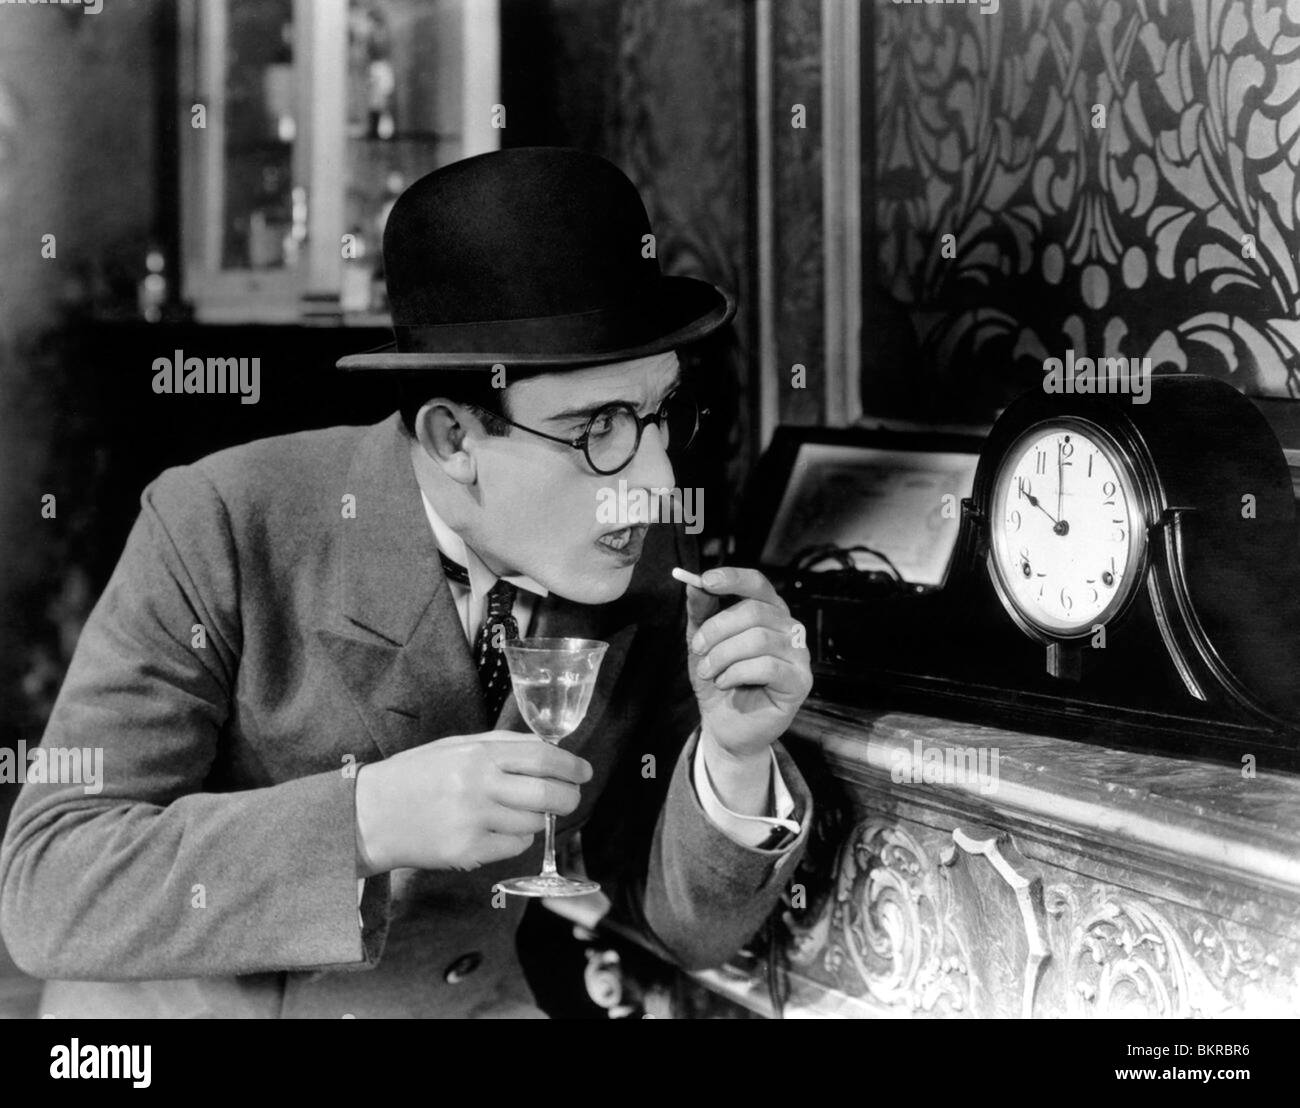 HIGH AND DIZZY (1920) HAROLD LLOYD HAL ROACH (DIR) 001 - Stock Image